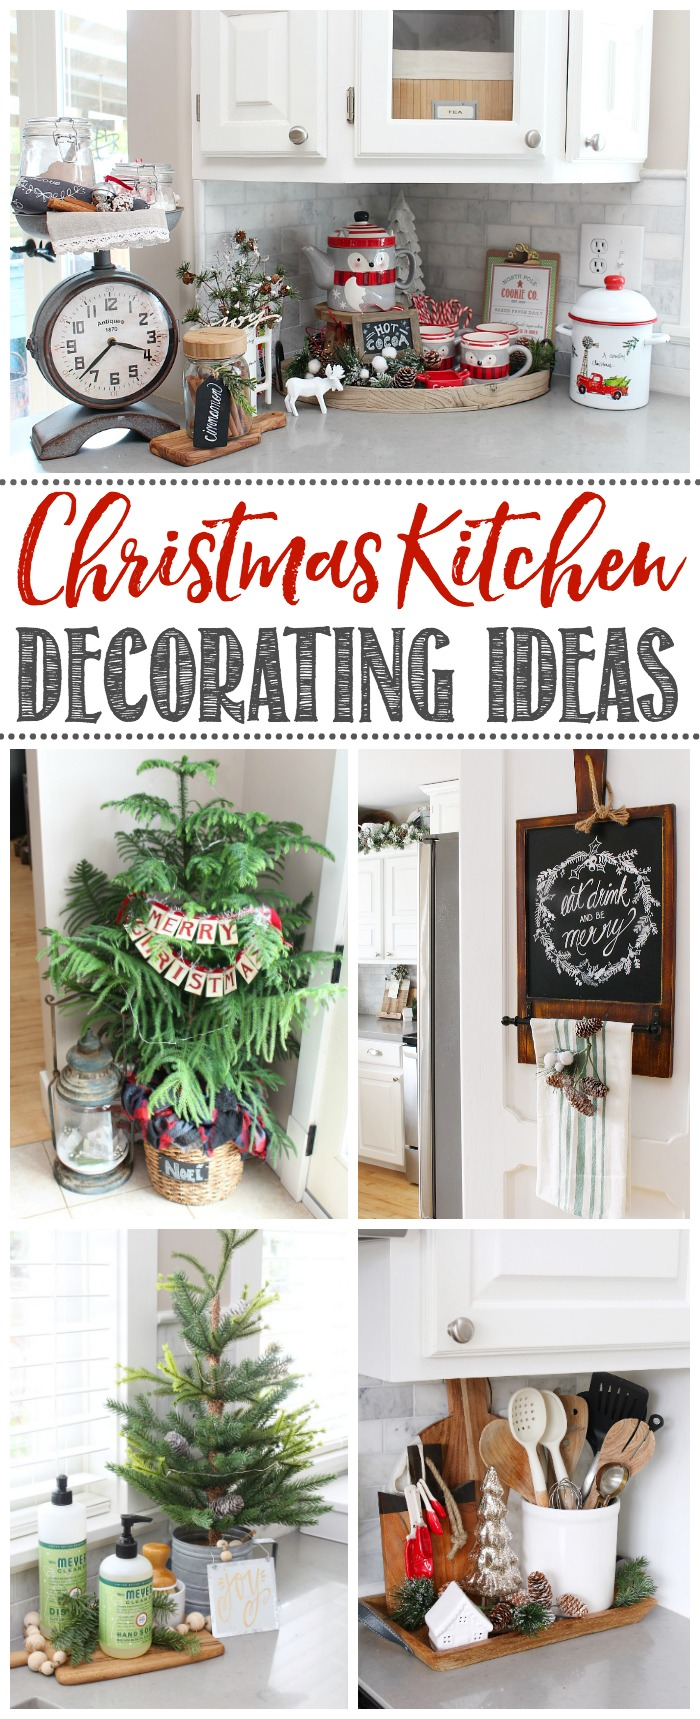 Christmas Kitchen Decorating Ideas. Lots of cute and simple ideas to help you decorate your own kitchen for Christmas.